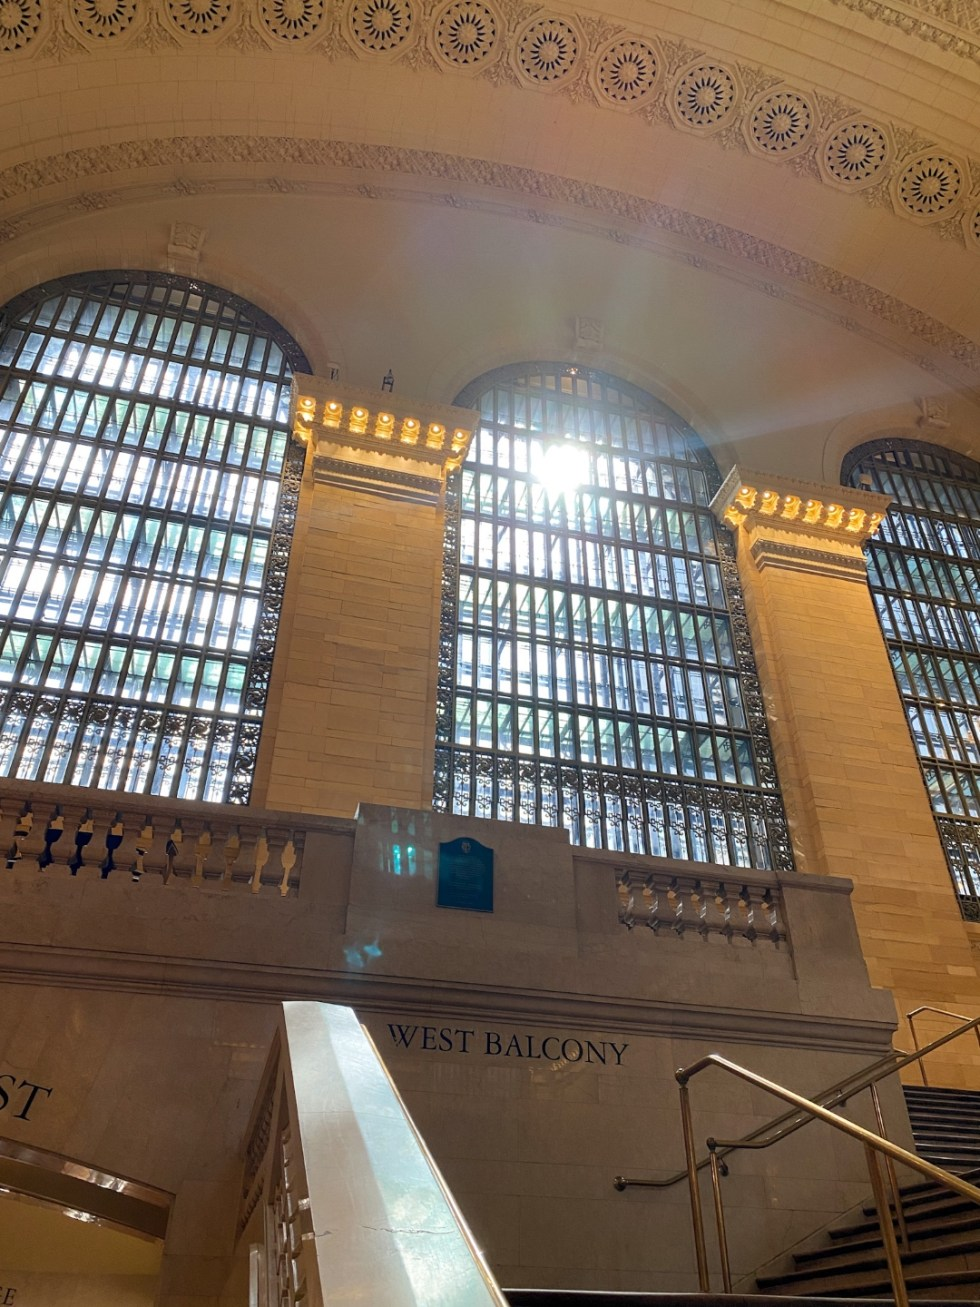 NYC Summer Weekend: Things to Do in NYC in the Summer - I'm Fixin' To - @imfixintoblog   NYC Summer Weekend by popular NC travel blog, I'm Fixin' To: image of the West Balcony in the Grand Central Terminal.